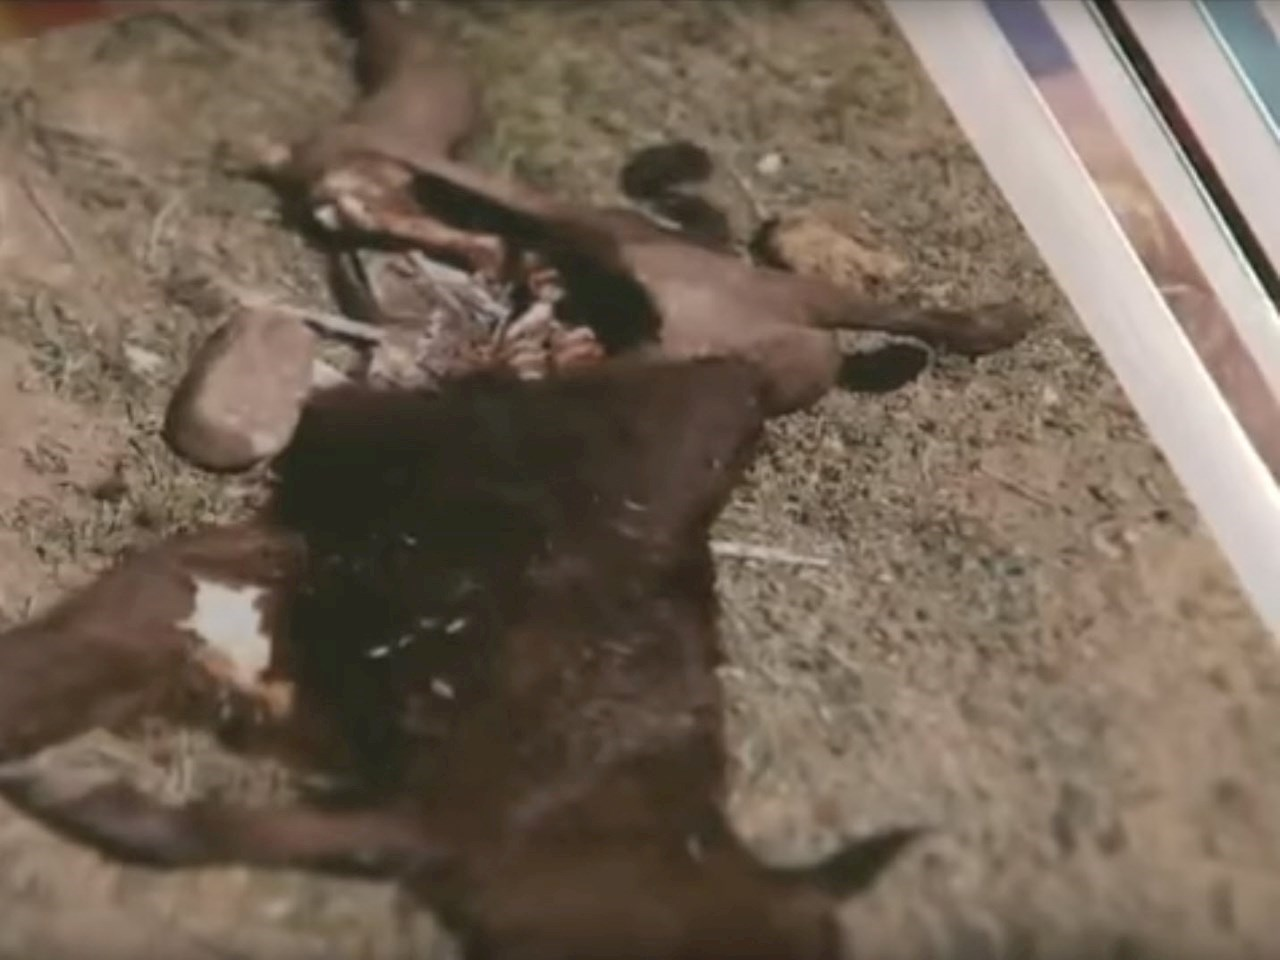 Photo of a mutilated cow